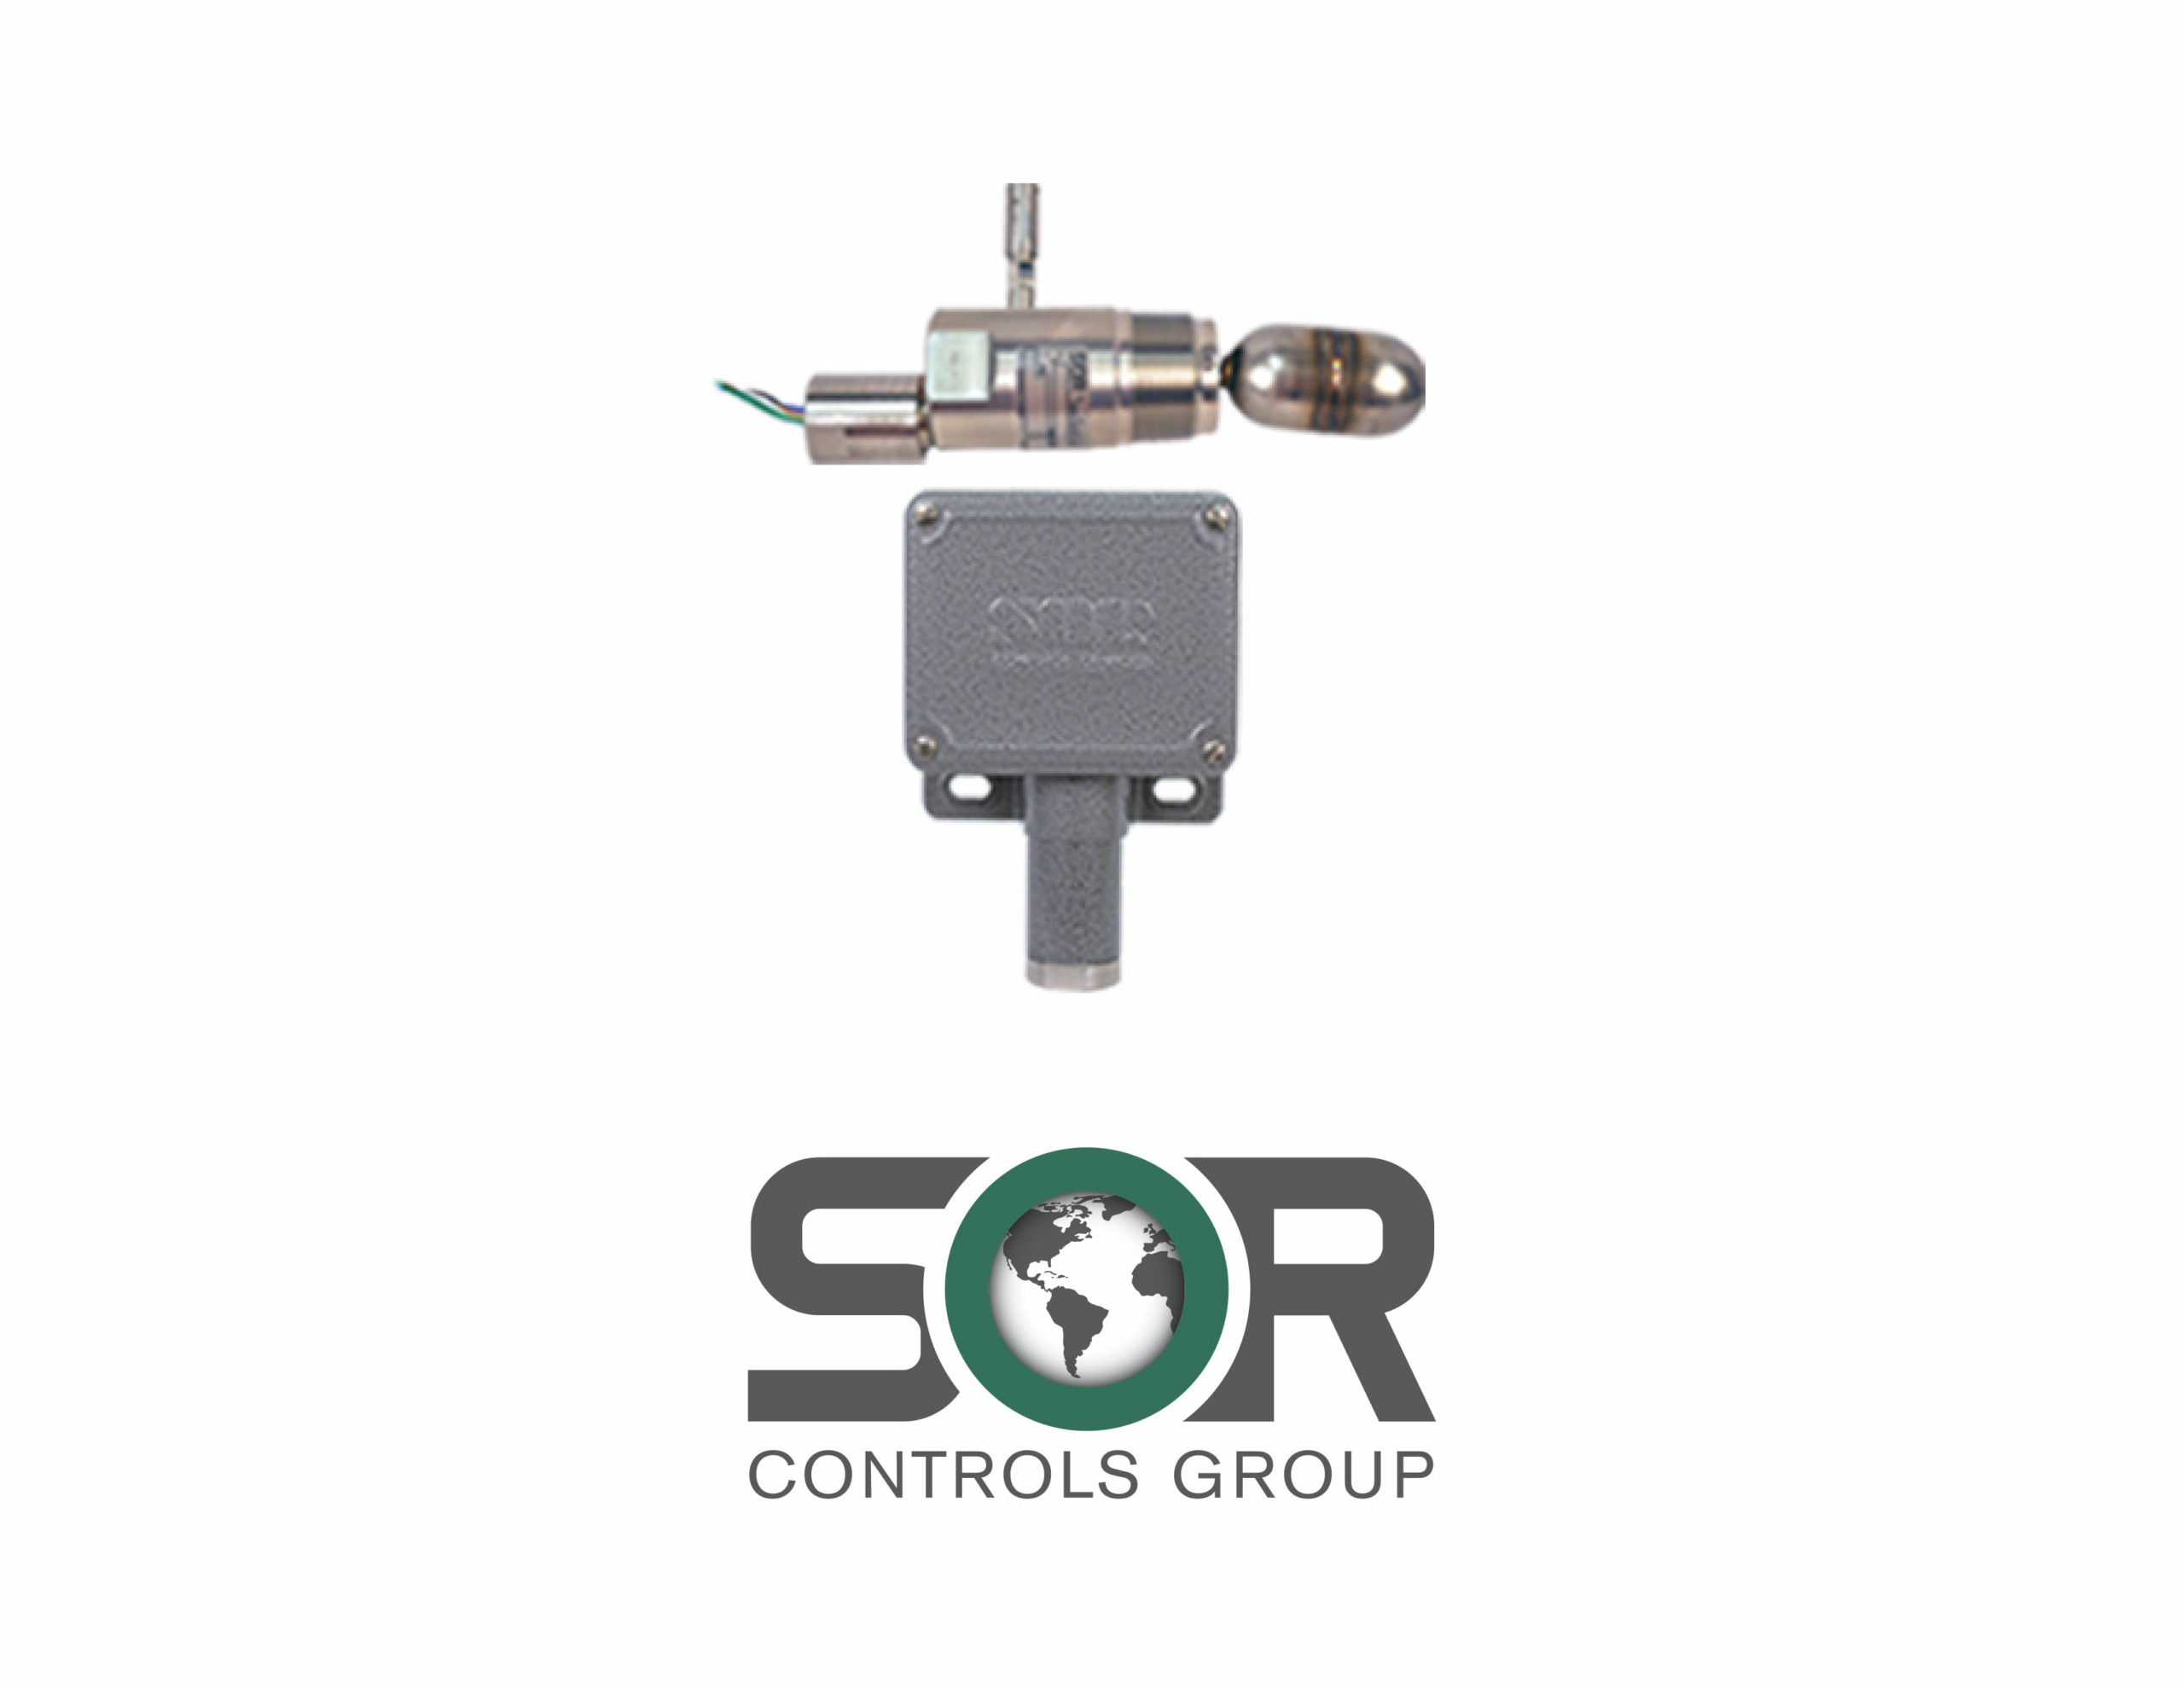 SOR Controls Group